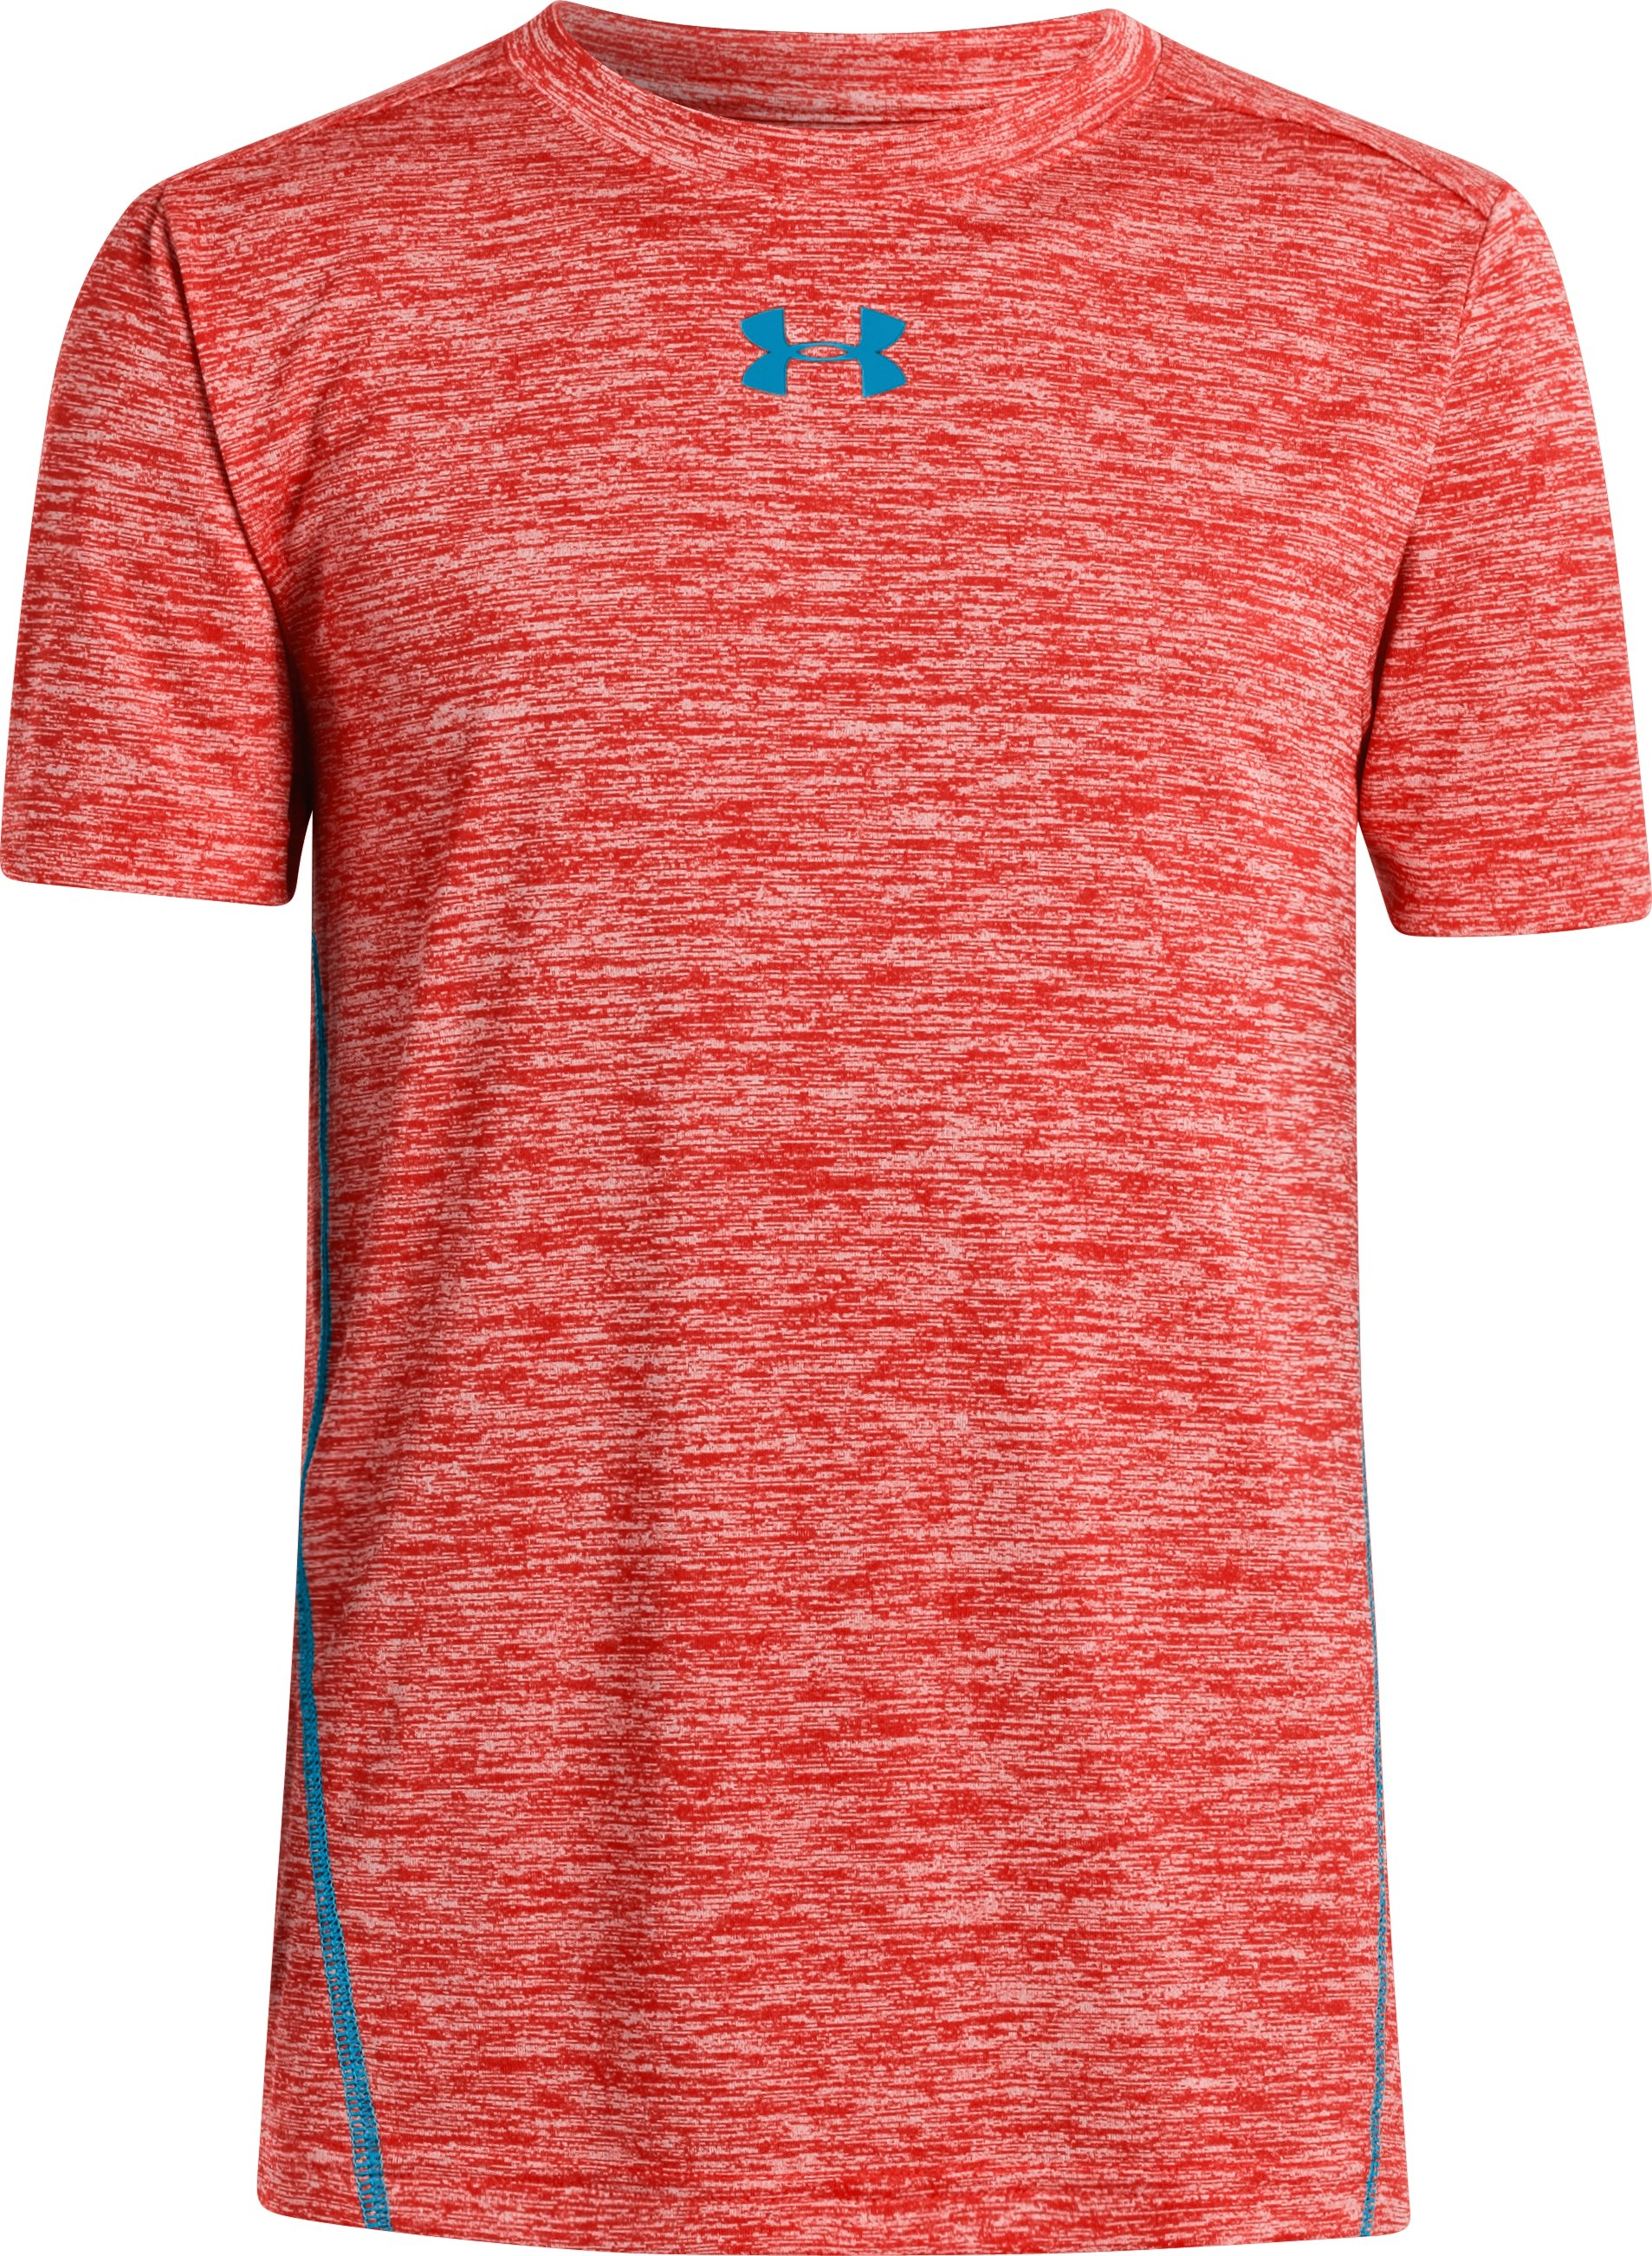 Boys' UA Tech™ Twist Short Sleeve T-Shirt, Noise